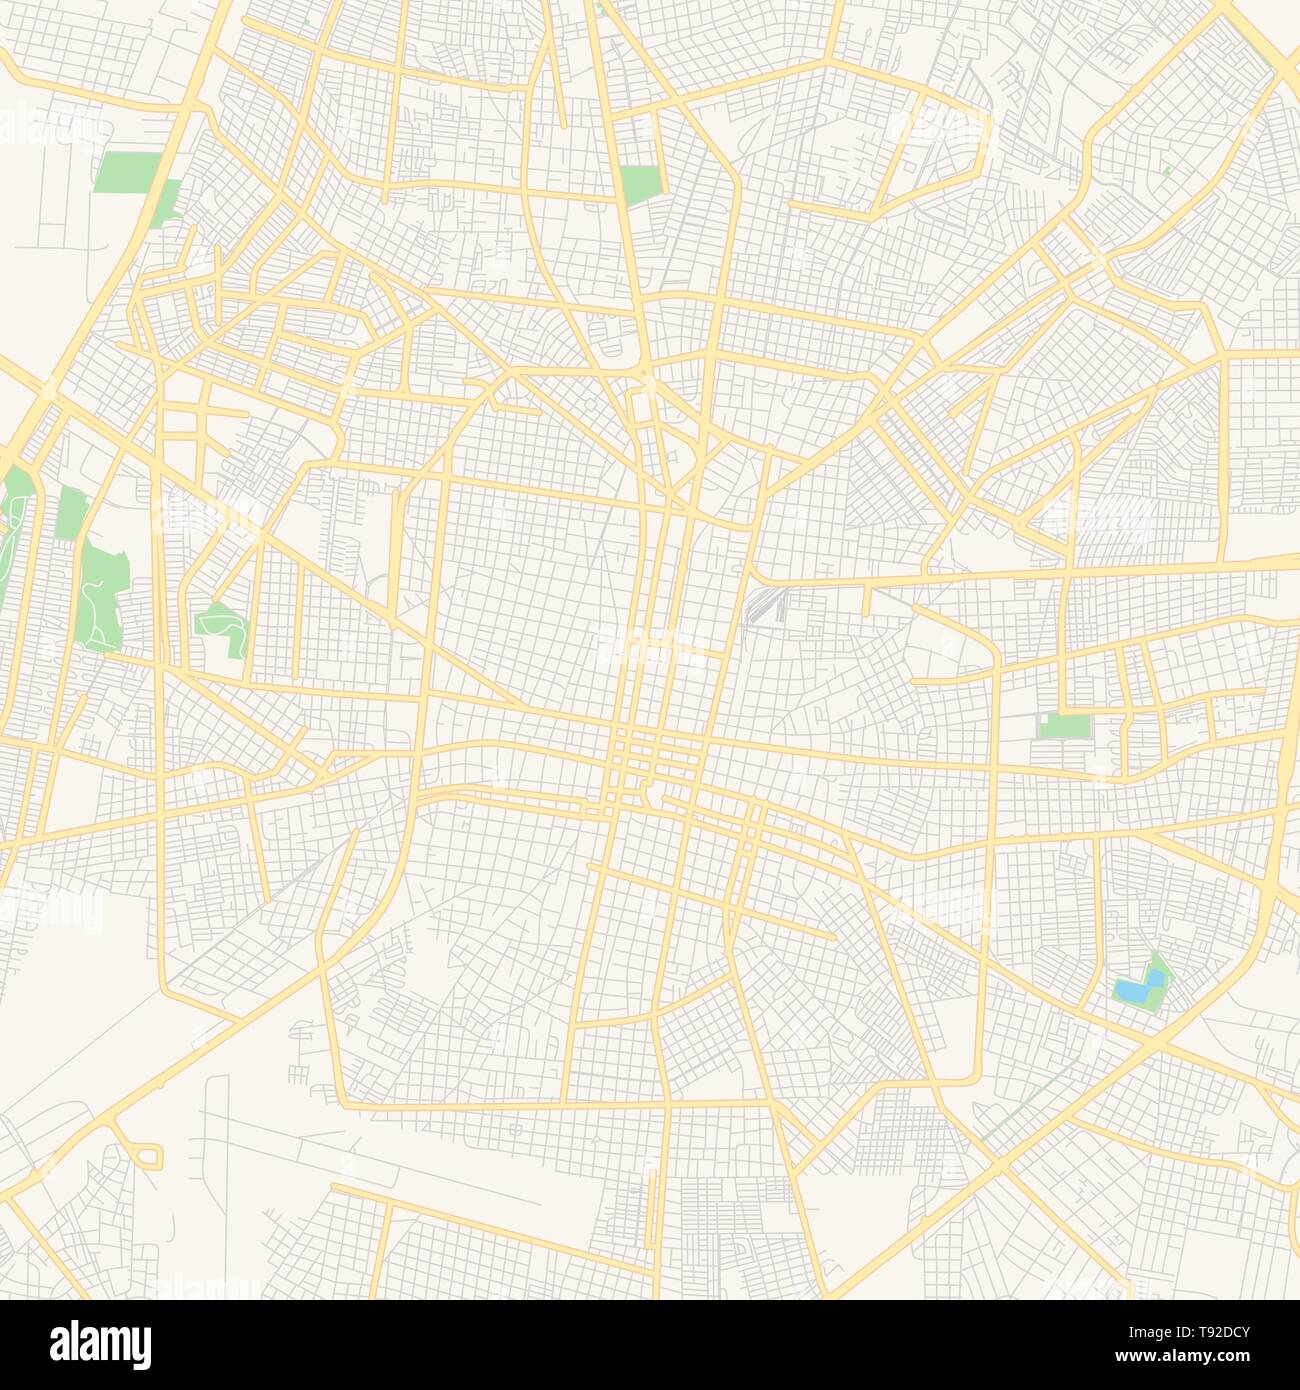 Empty vector map of Mérida, Yucatán, Mexico, printable road map created in classic web colors for infographic backgrounds. Stock Vector